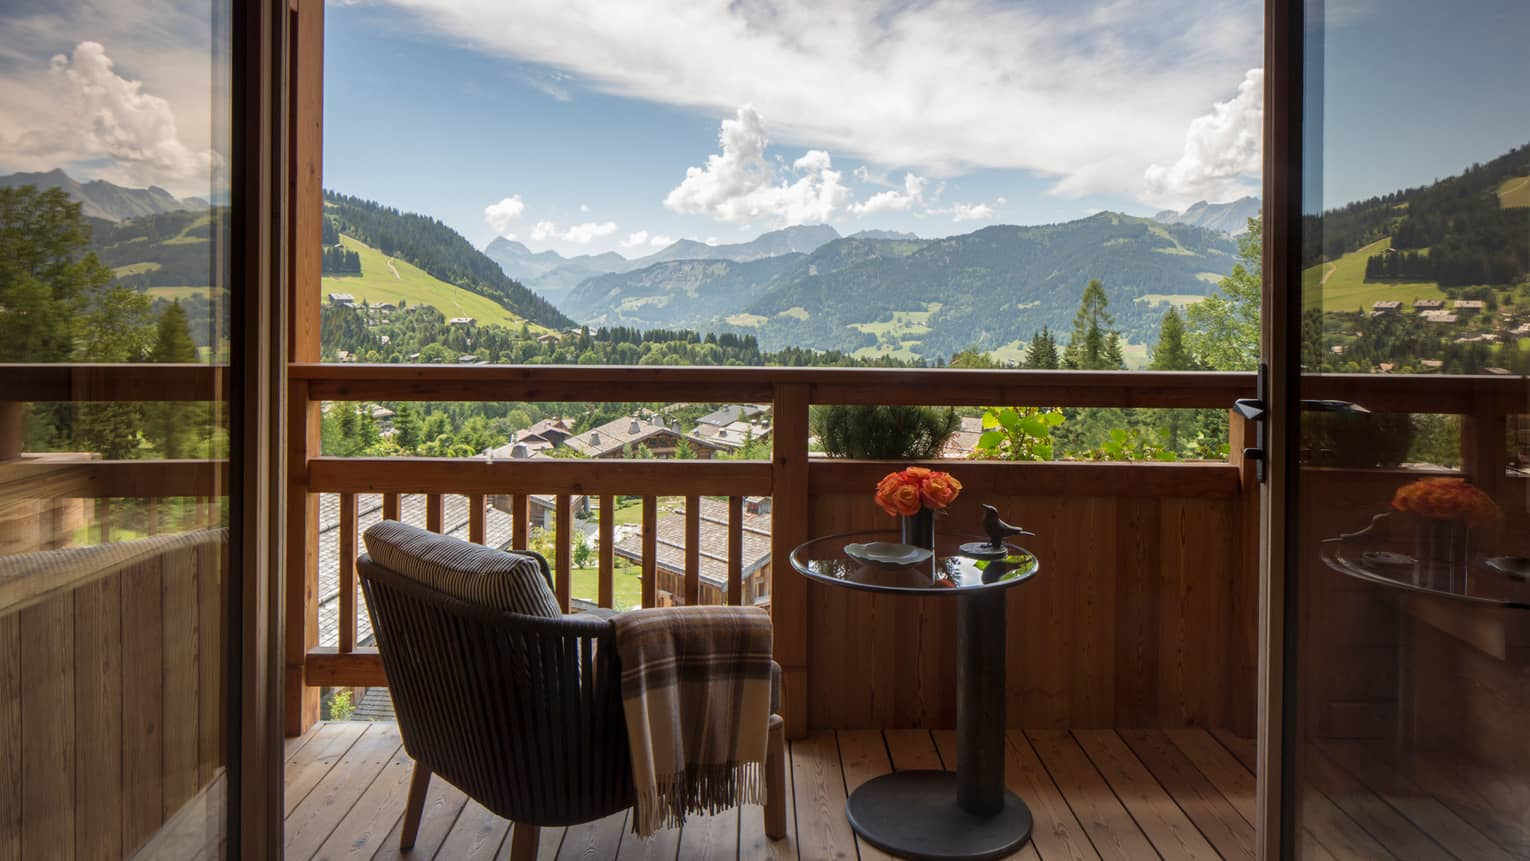 Suites des Alpes patio chair with blanket, table with flowers on balcony overlooking French Alps